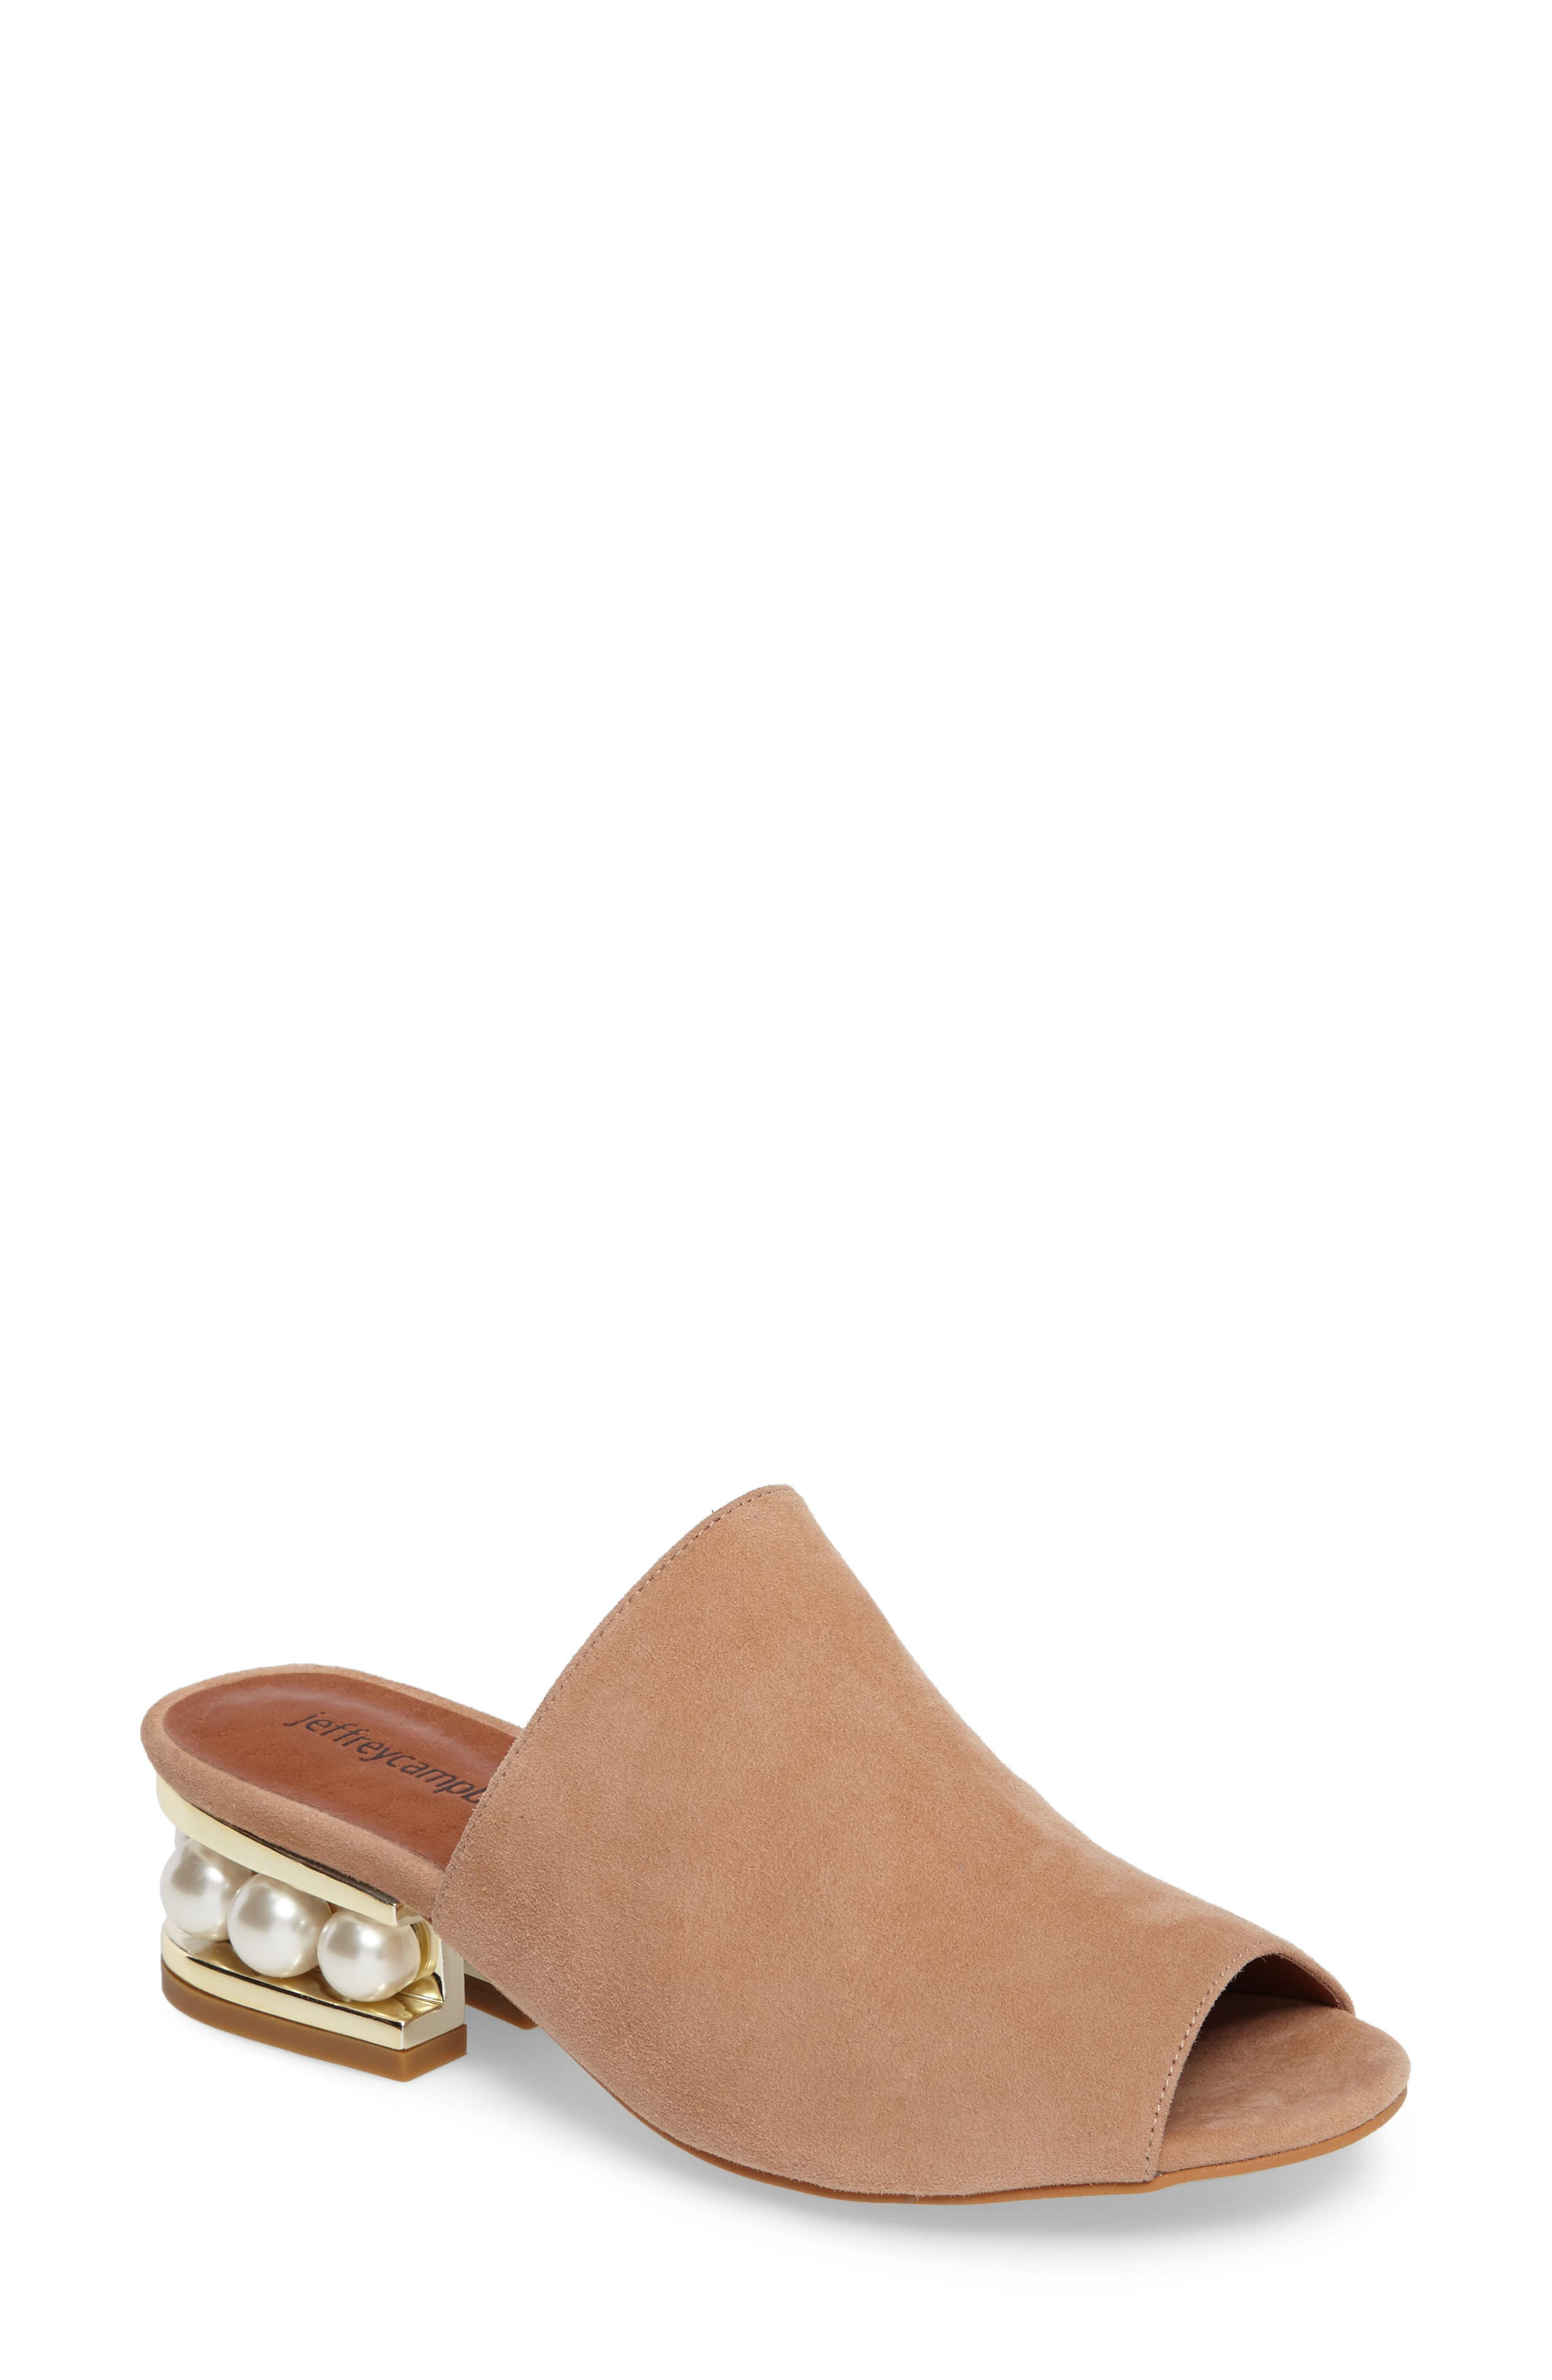 Jeffrey Campbell Arcita Slide Sandal (Women)